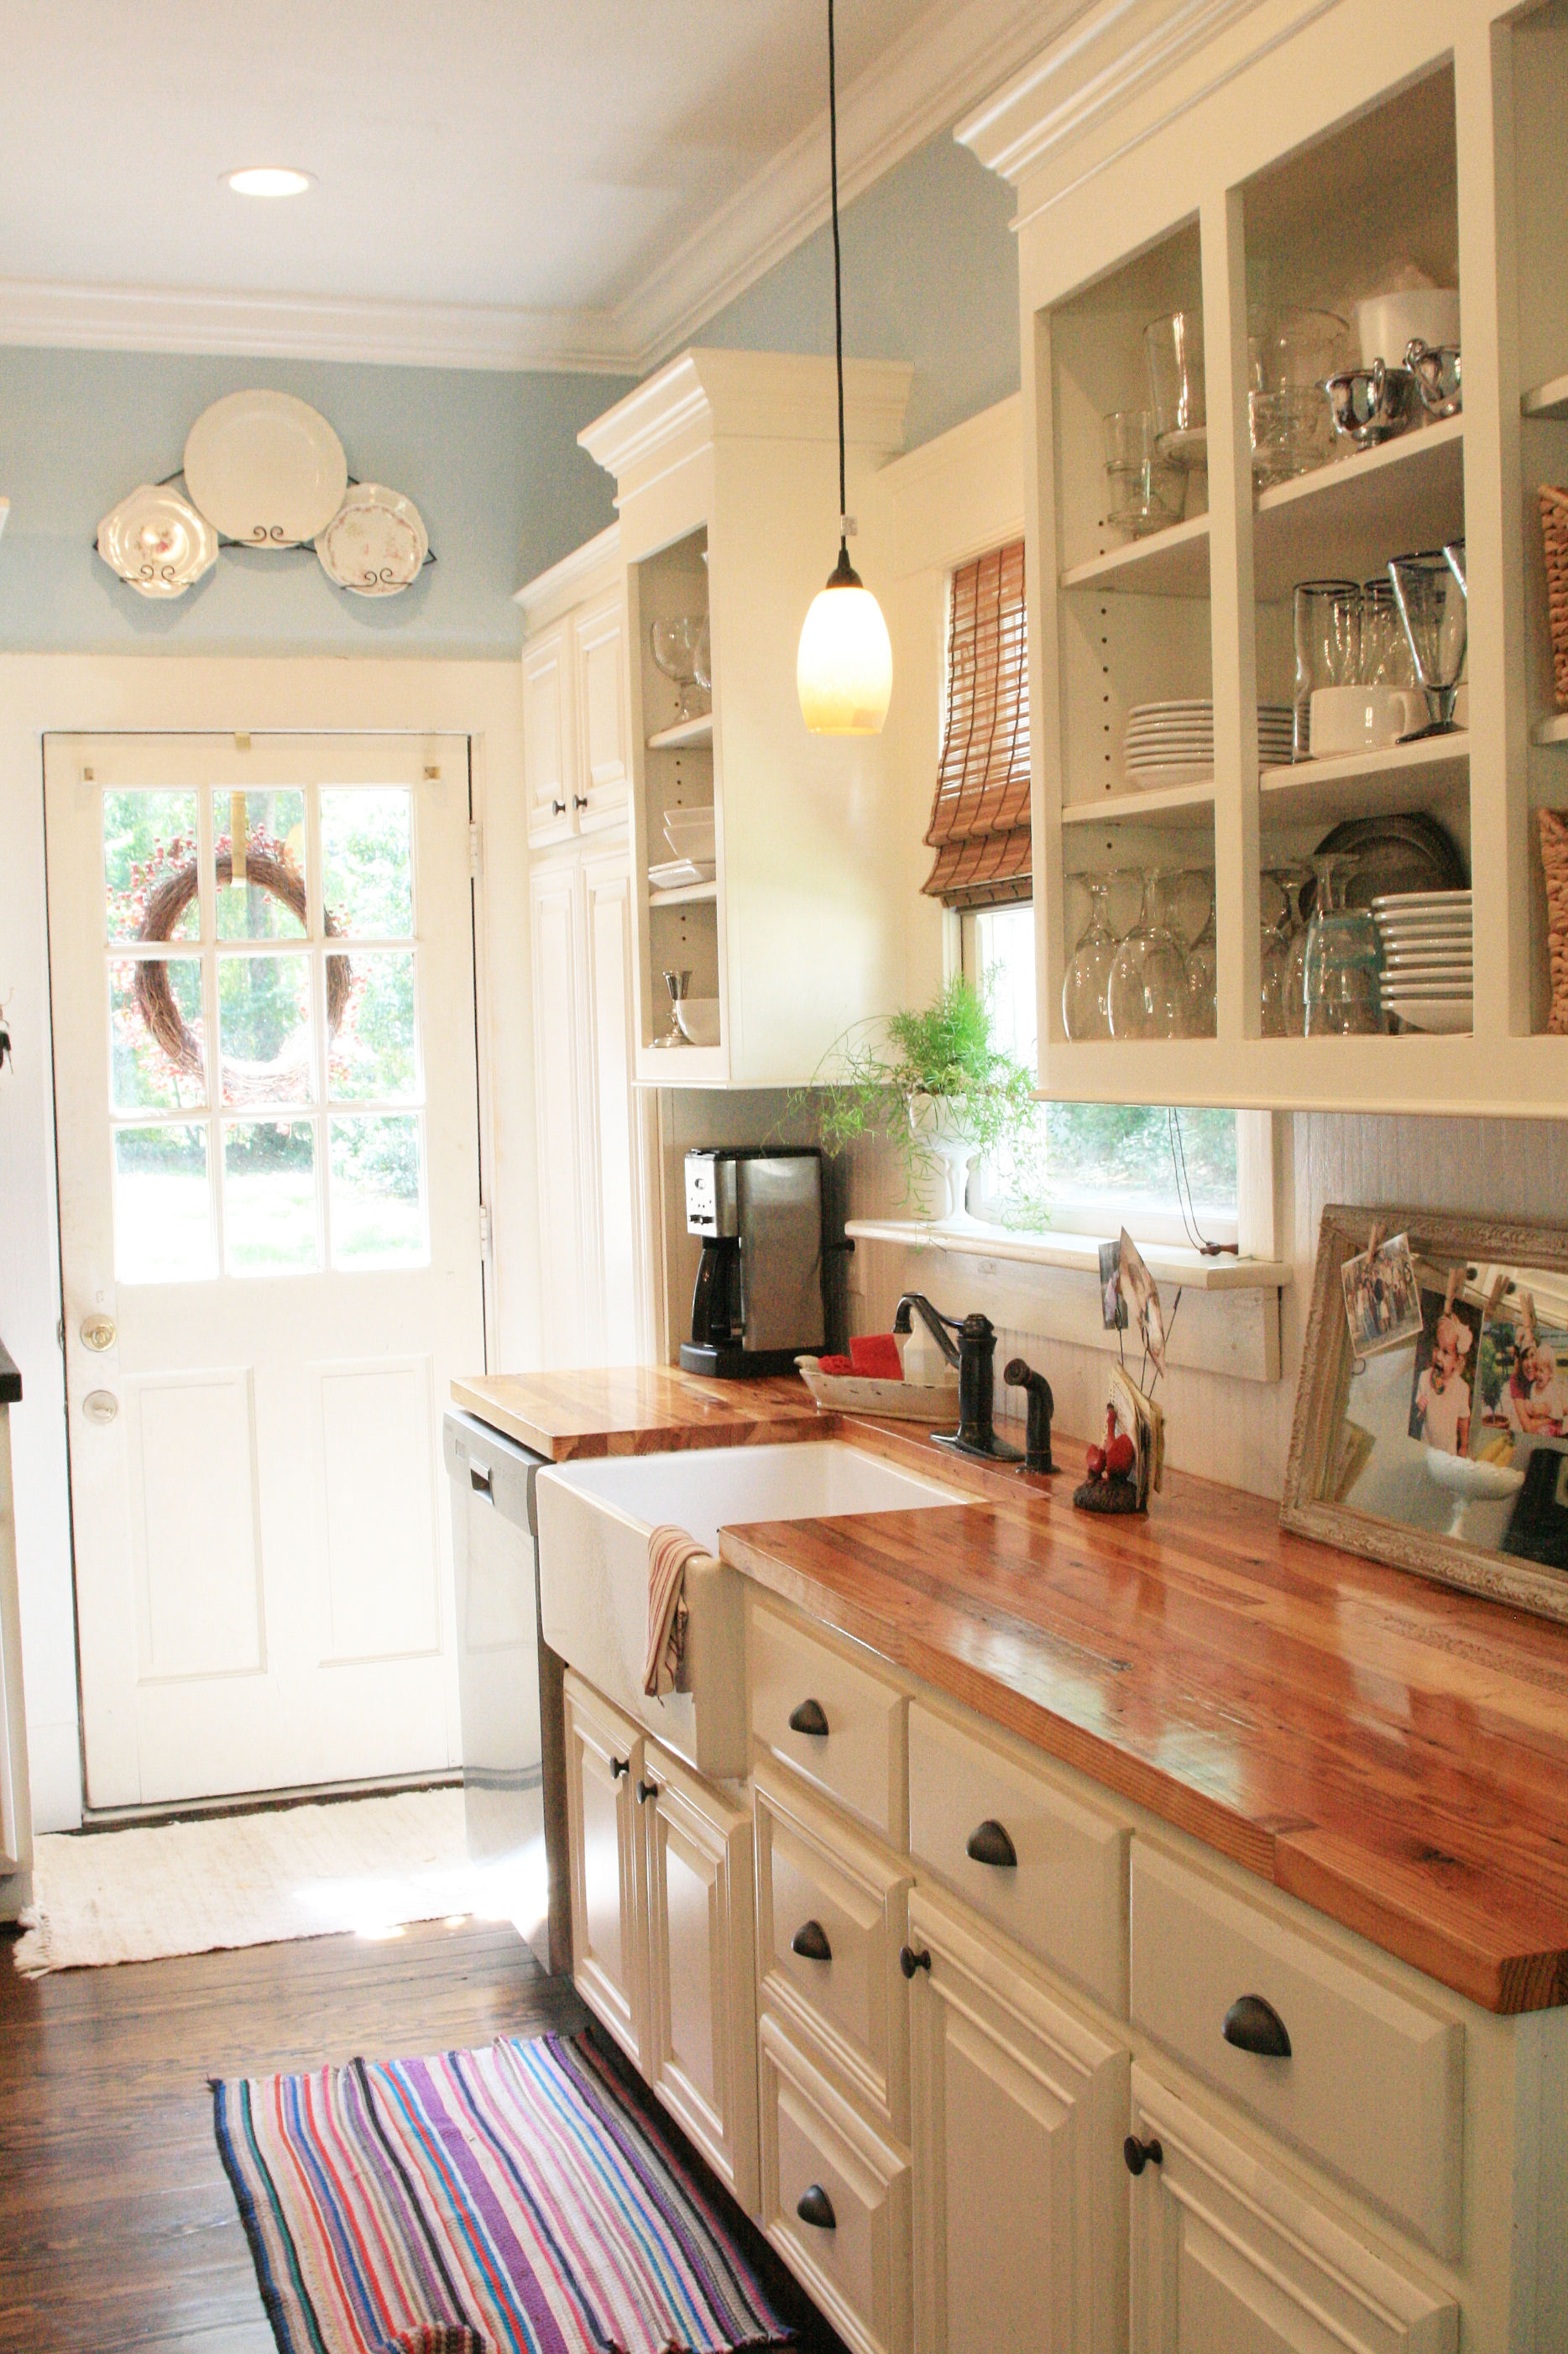 23 Best Rustic Country Kitchen Design Ideas and ... on Kitchen  id=78137